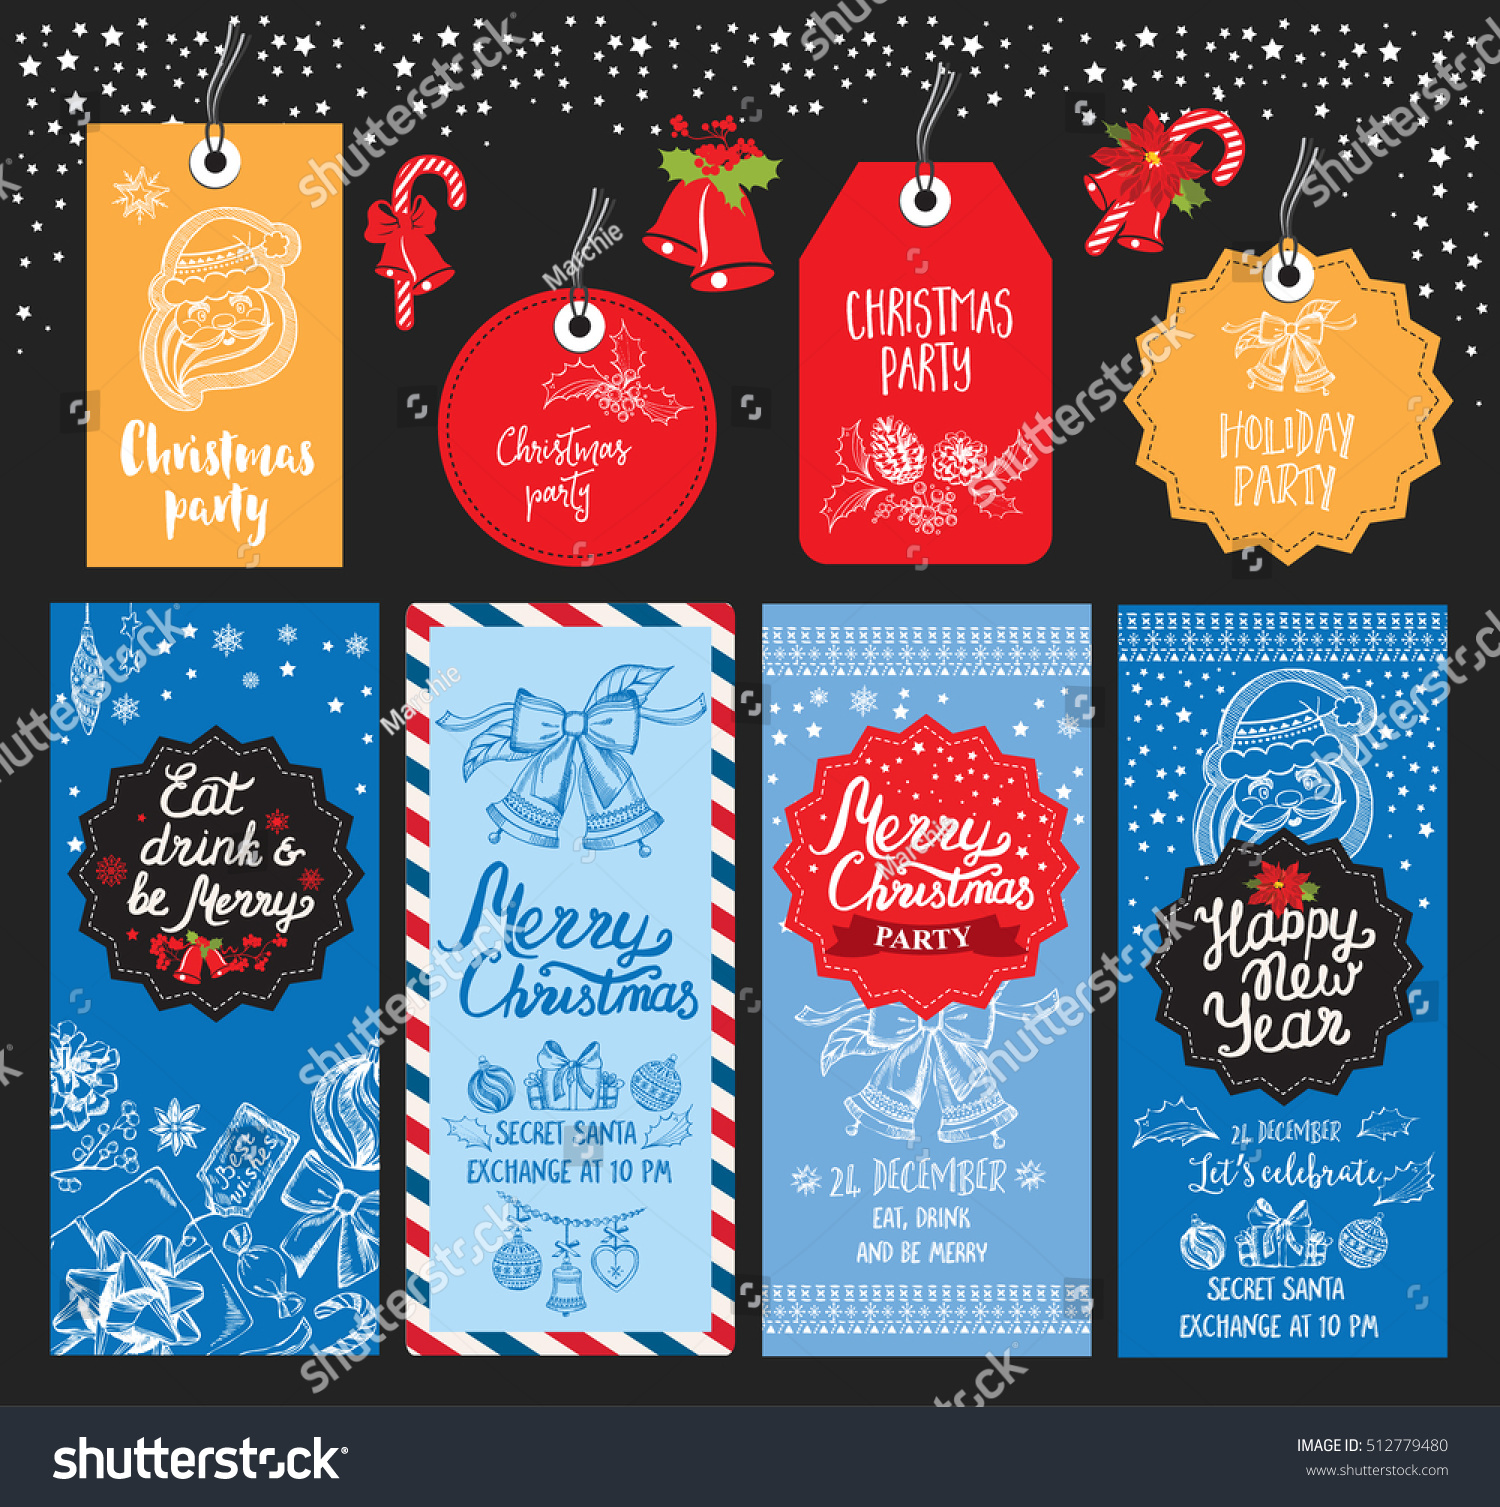 christmas restaurant brochure menu template vector stock vector christmas restaurant brochure menu template vector holiday background and design banner happy new